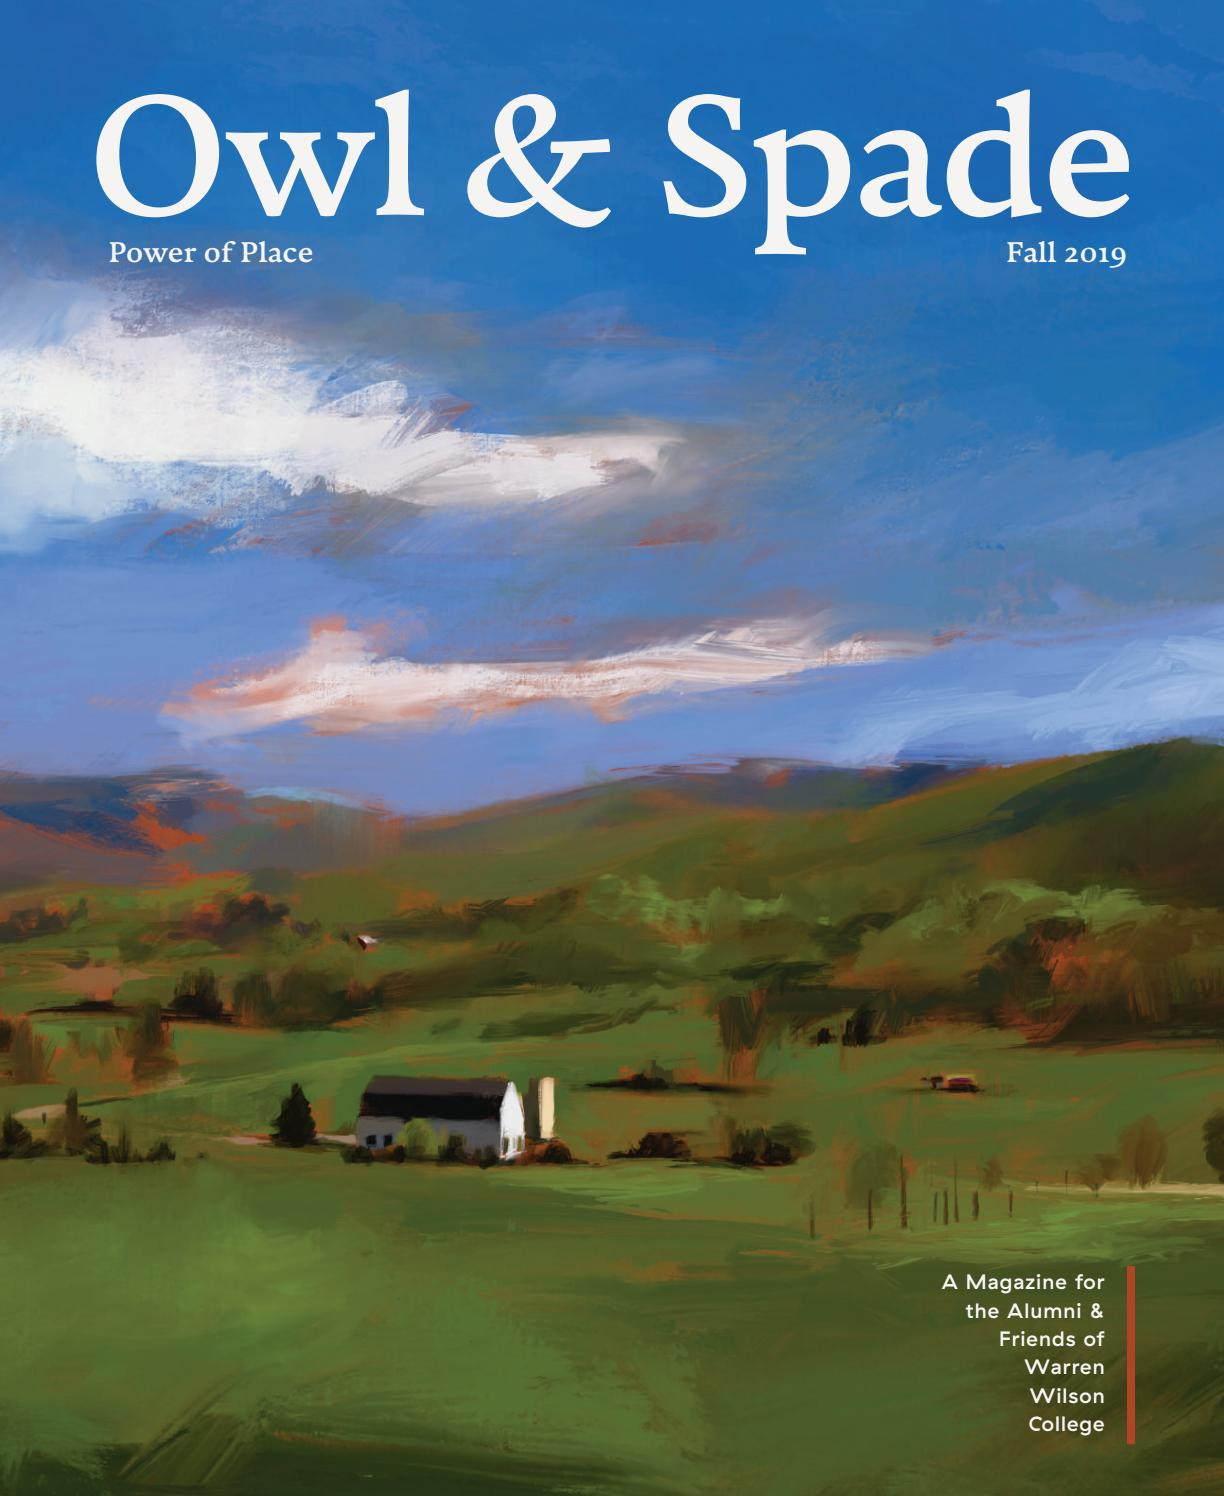 Owl And Spade 2019 Power Of Place By Warren Wilson College Issuu